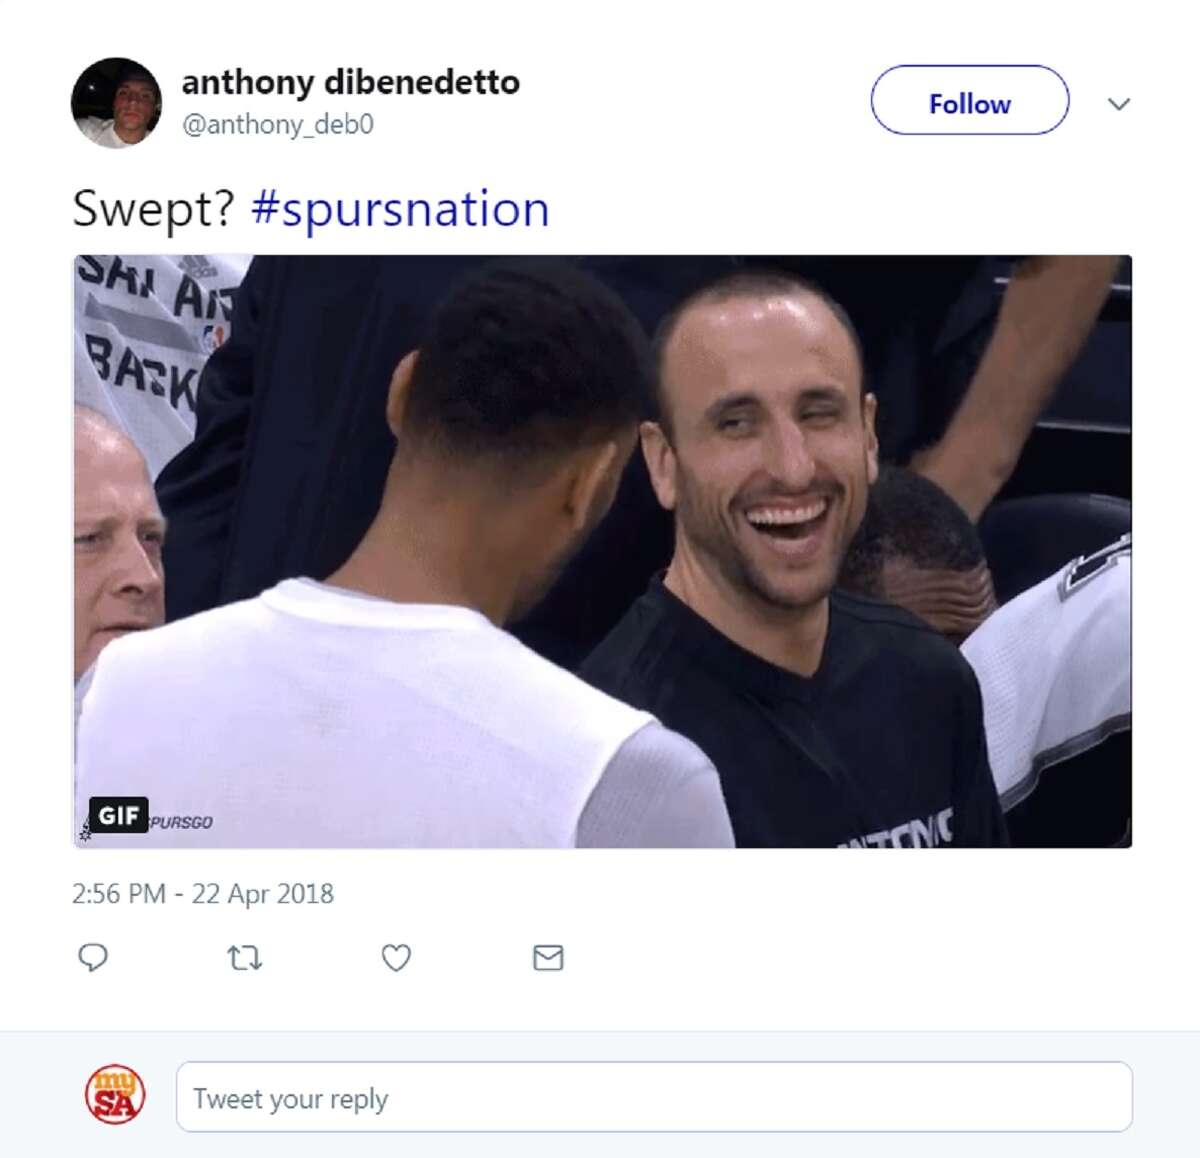 Spurs fans were quick to take to social media to praise Manu Ginóbili and celebrate the Spurs win in Game 4. They were joined by Sports pundits showing respect to the 40-year-old veteran.